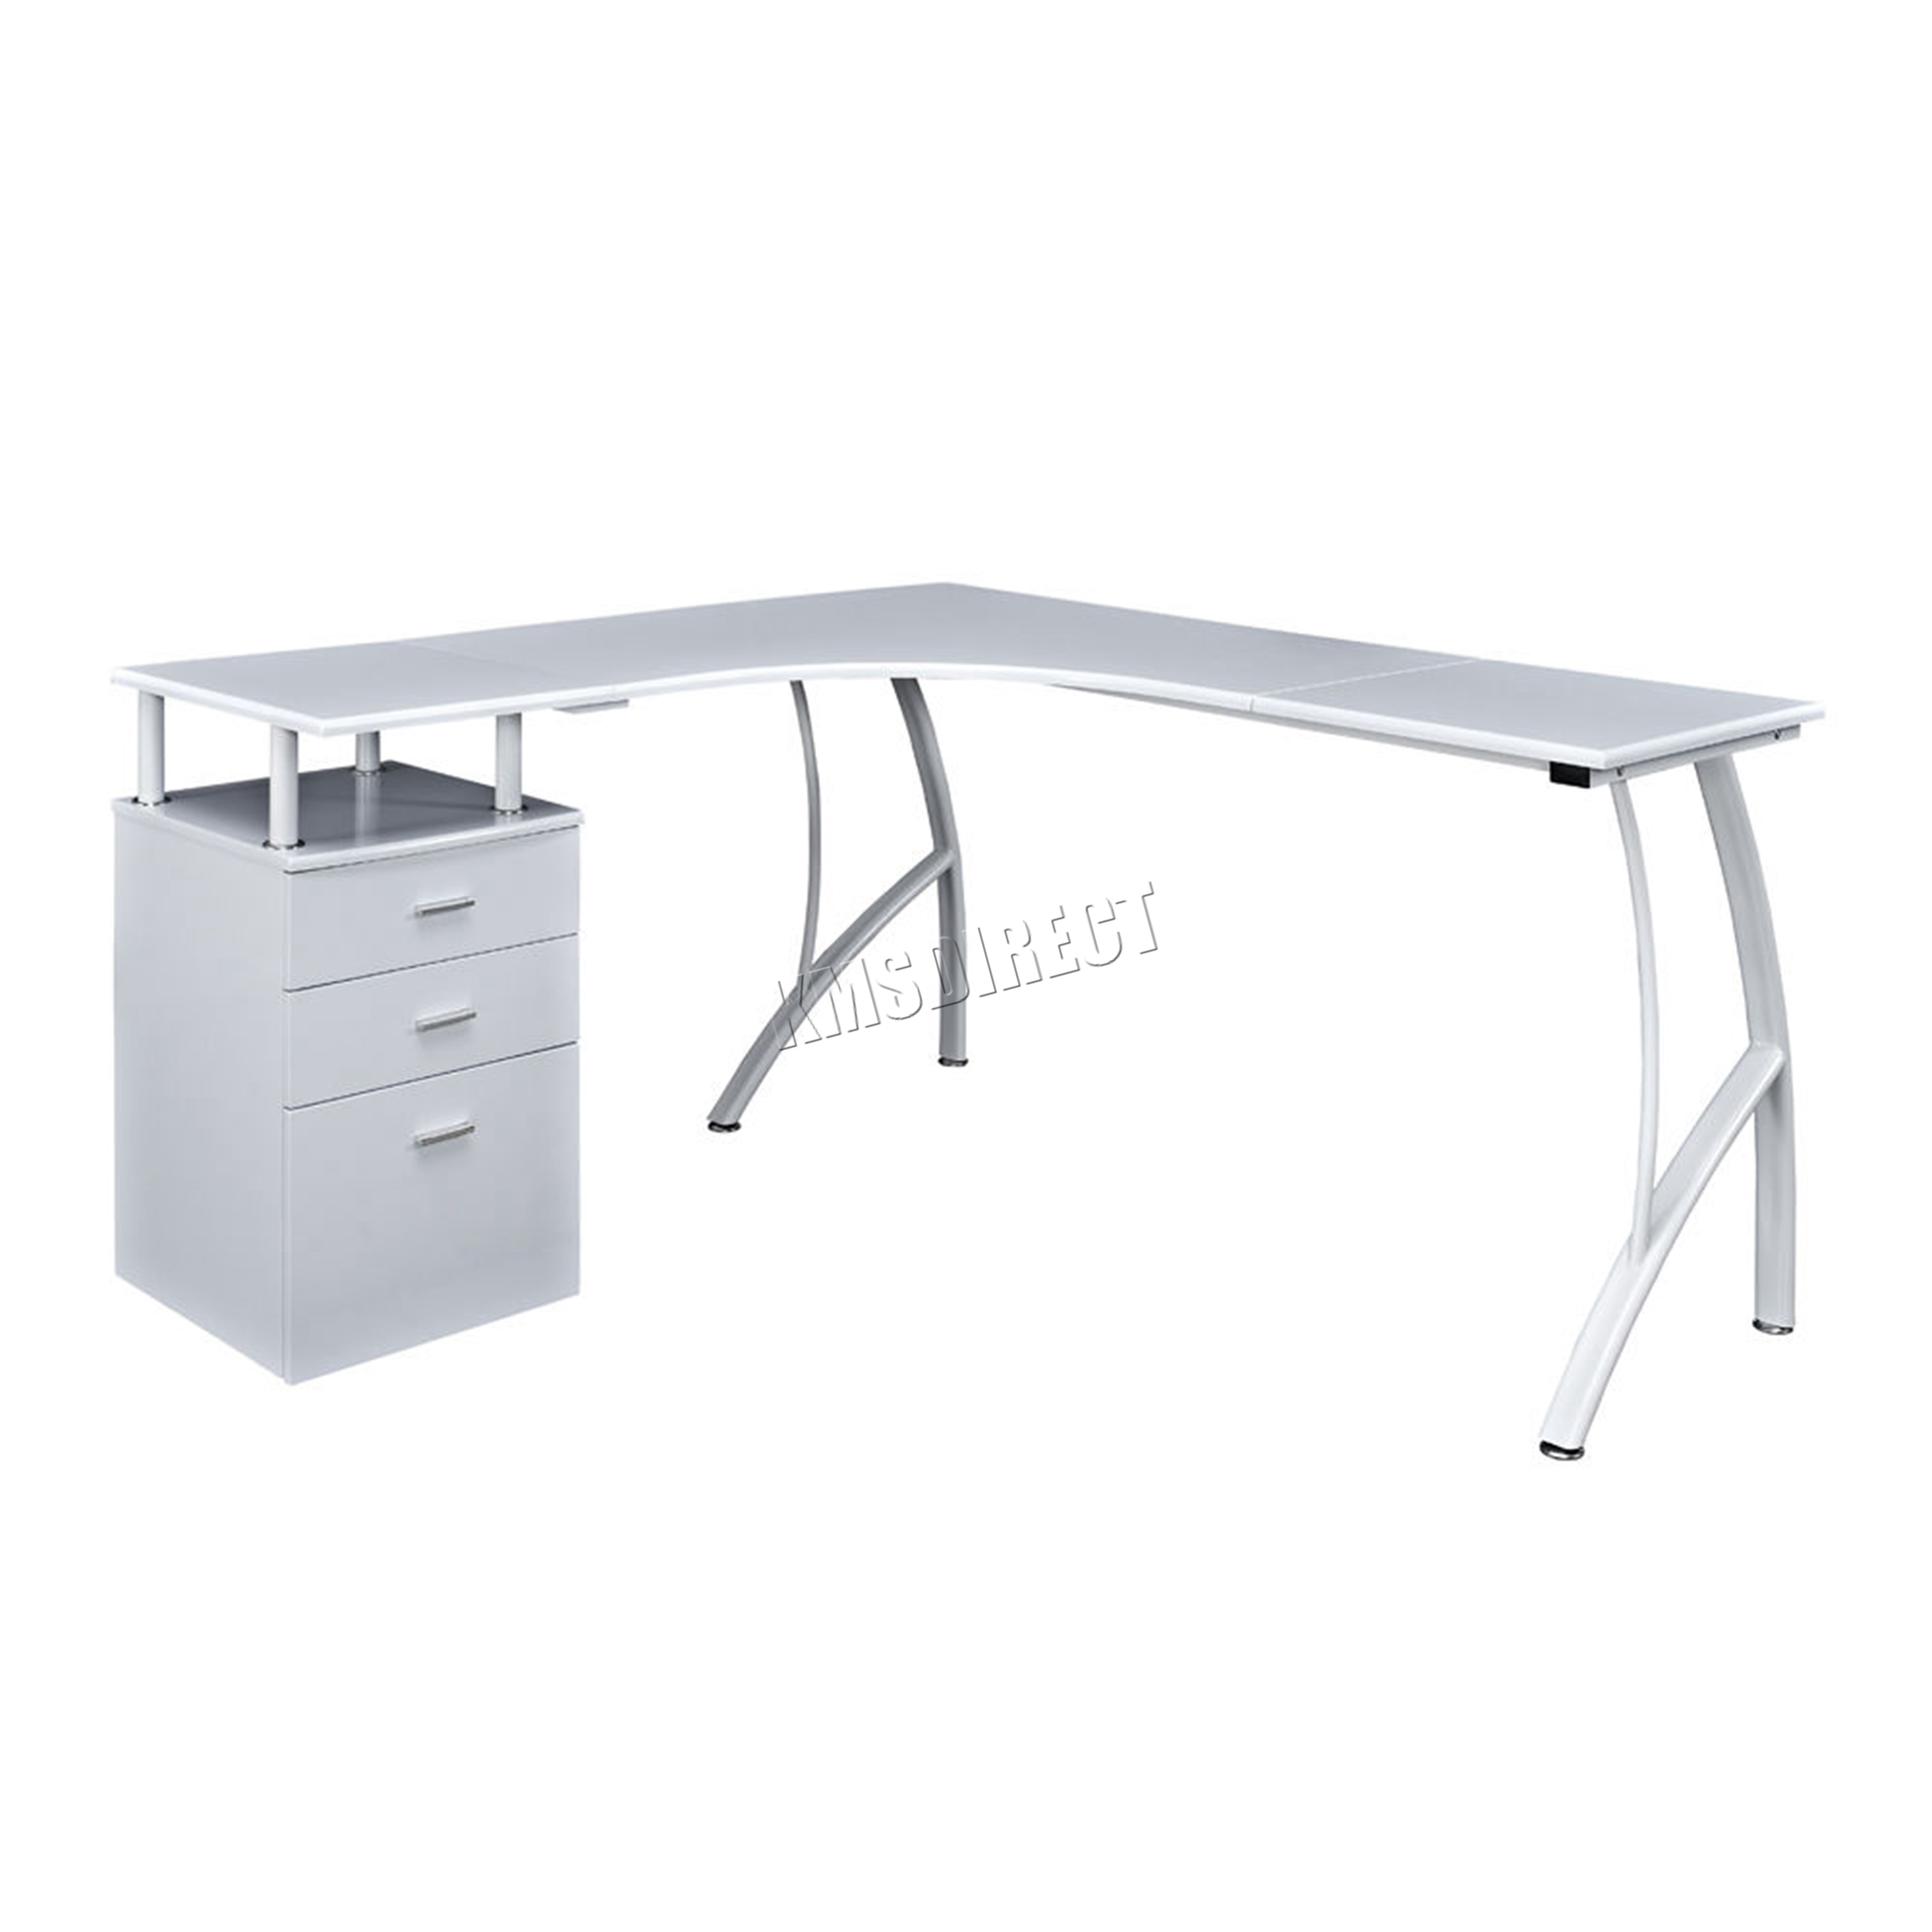 Sentinel Westwood L Shaped Corner Computer Desk Pc Table Home Office Study Cd04 White